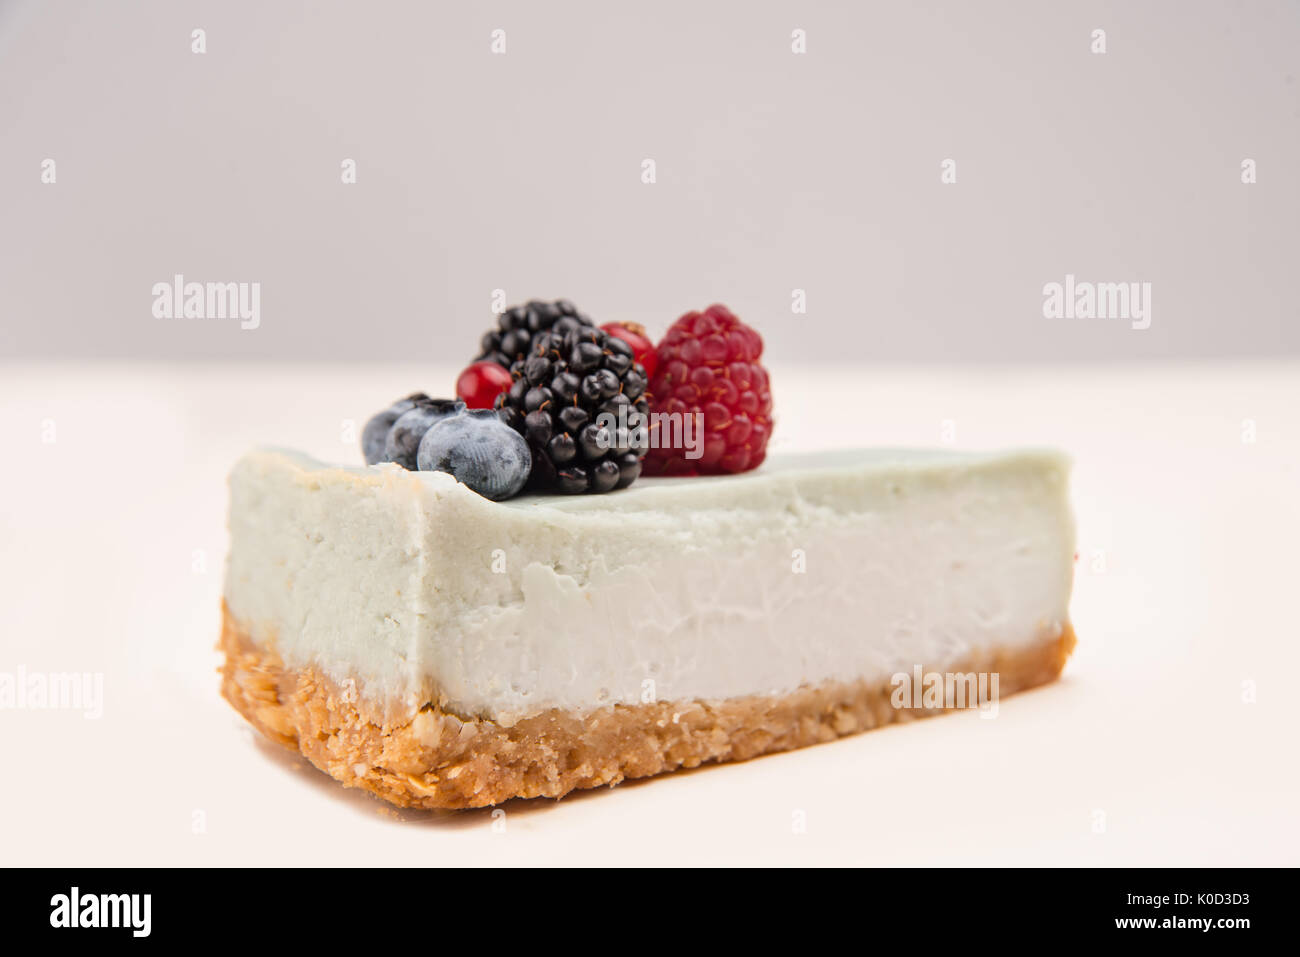 Side view of blue cheesecake with different berries on it isolated over white - Stock Image